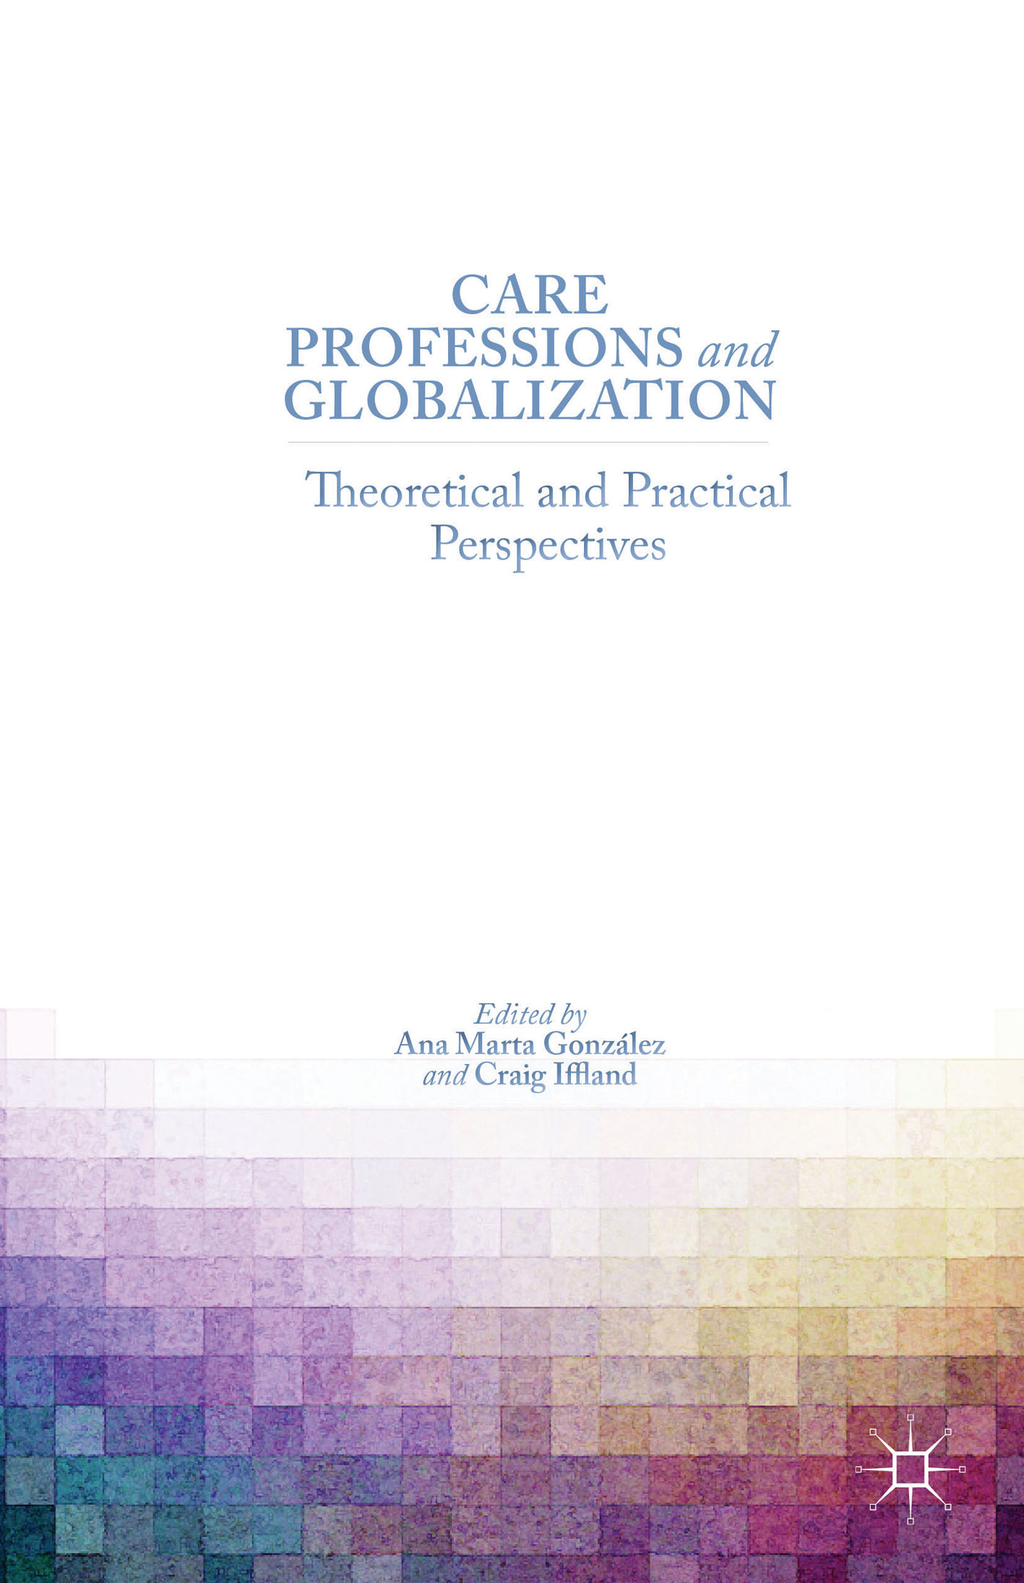 Care Professions and Globalization Theoretical and Practical Perspectives